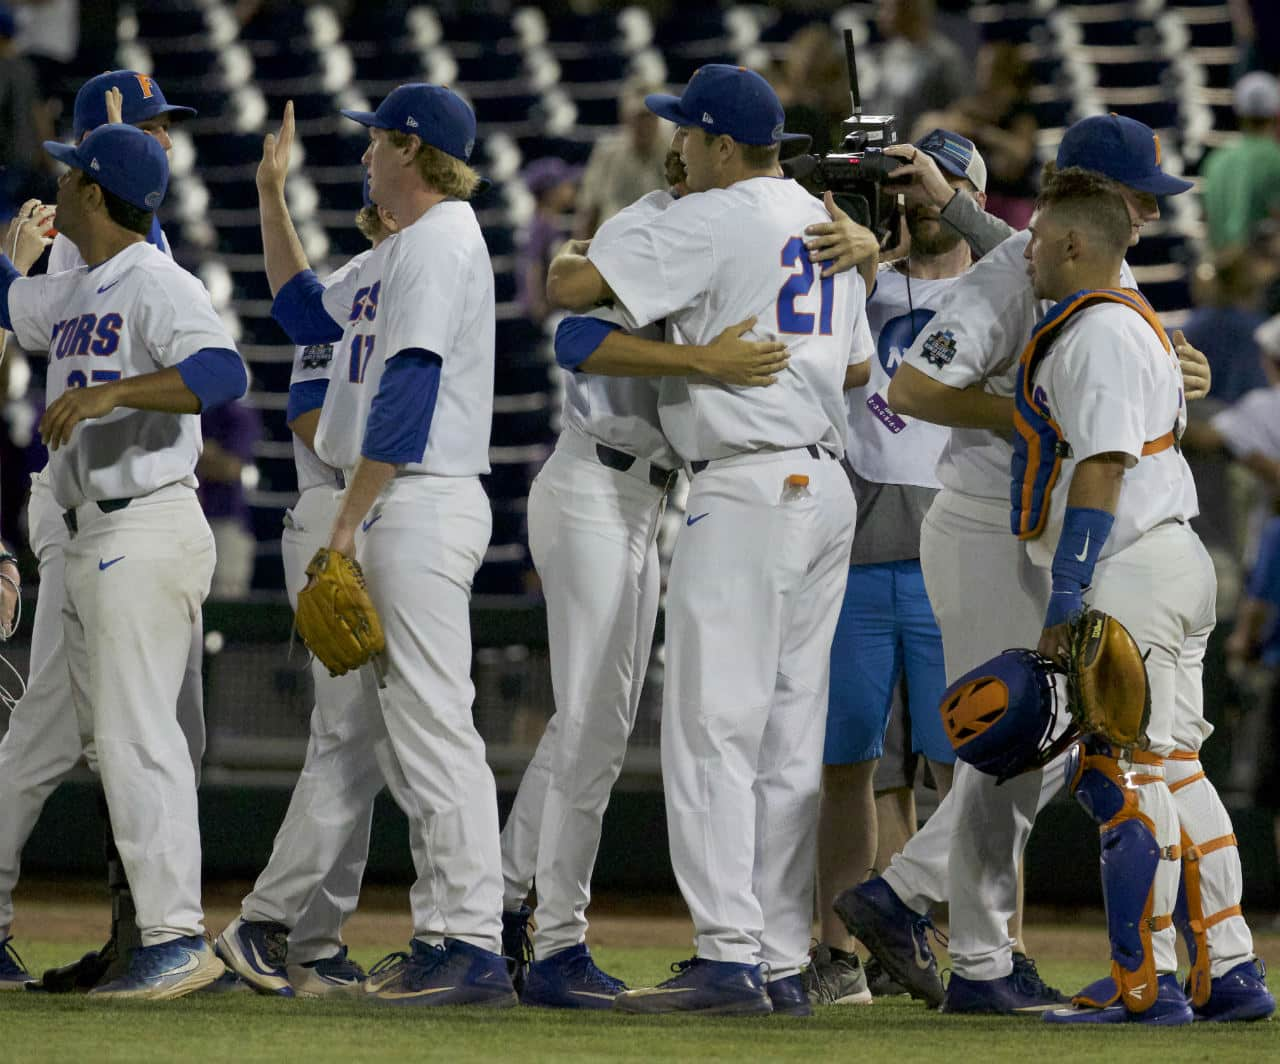 Jun 18, 2017; Omaha, NE, USA; Florida Gators pitcher Alex Faedo (21) and pitcher Michael Byrne (17) celebrate after defeating the TCU Horned Frogs at TD Ameritrade Park Omaha. Florida won 3-0. Mandatory Credit: Bruce Thorson-USA TODAY Sports